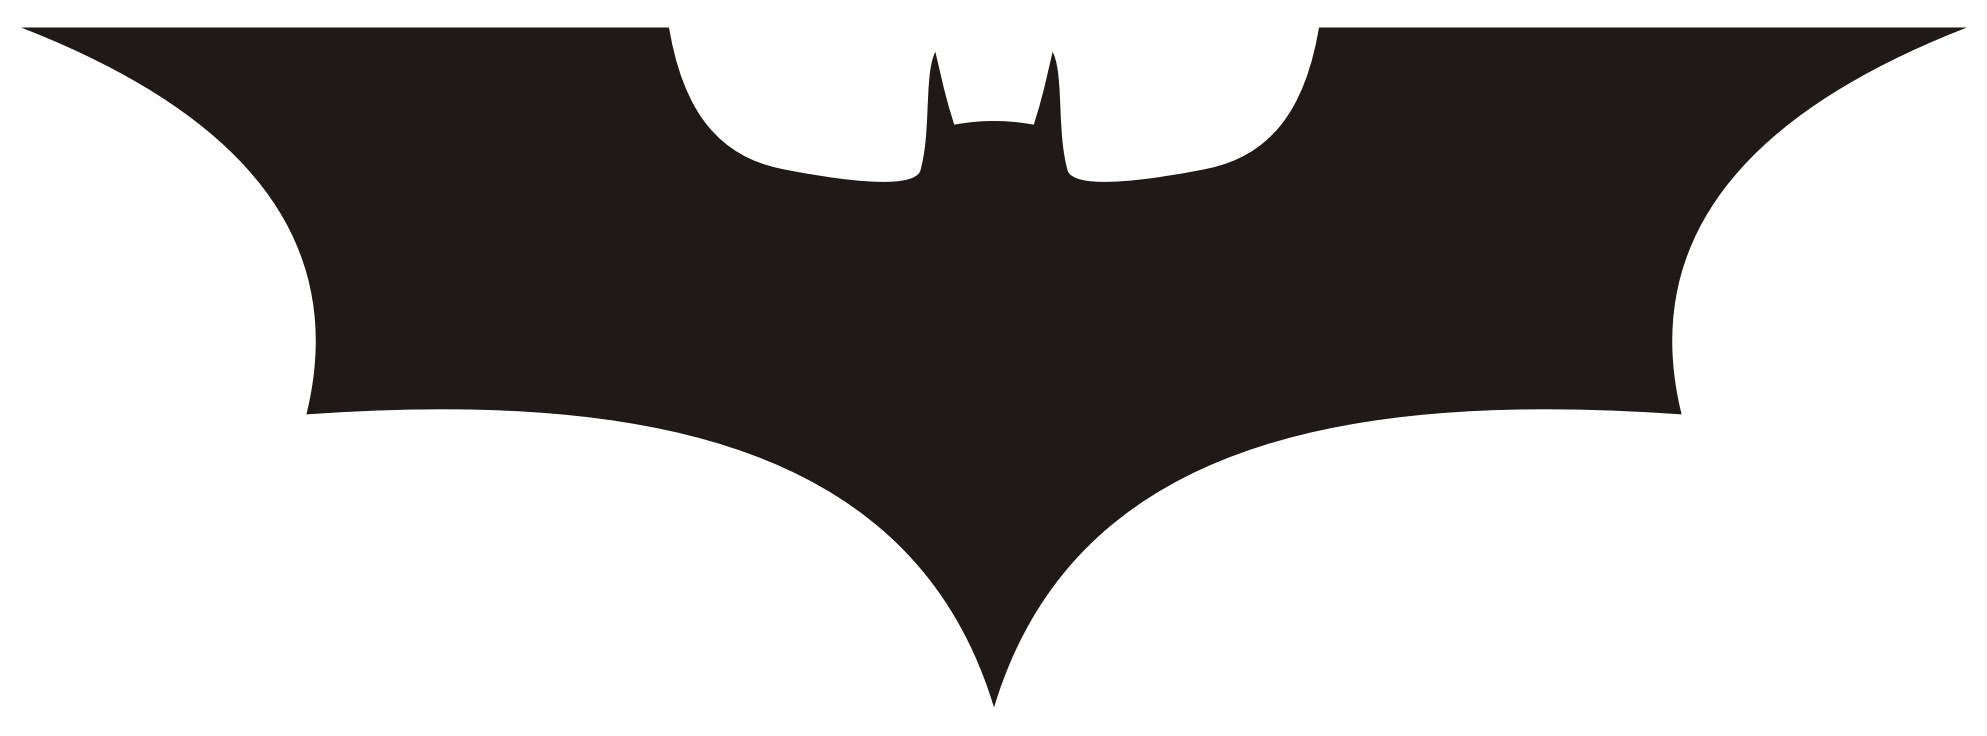 1987x736 Collection Of Free Youtube Clipart Batman Crabs Clipart